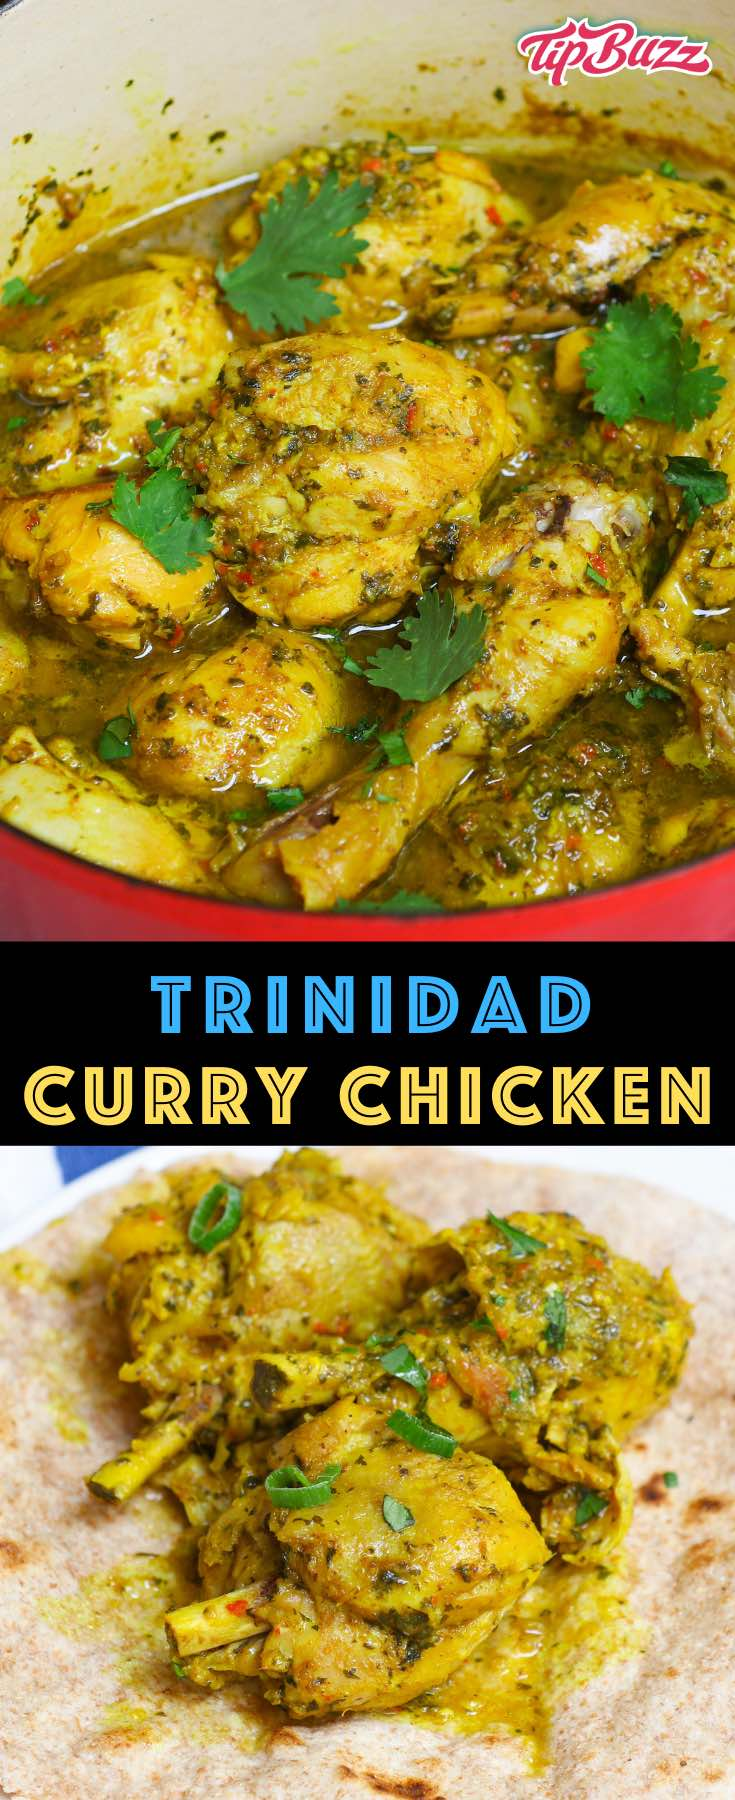 This Trinidad Curry Chicken will satisfy all your cravings for the West Indies! It's full of fiery, fragrant flavors and easy to make in less than an hour. #trinicurrychicken #currychicken